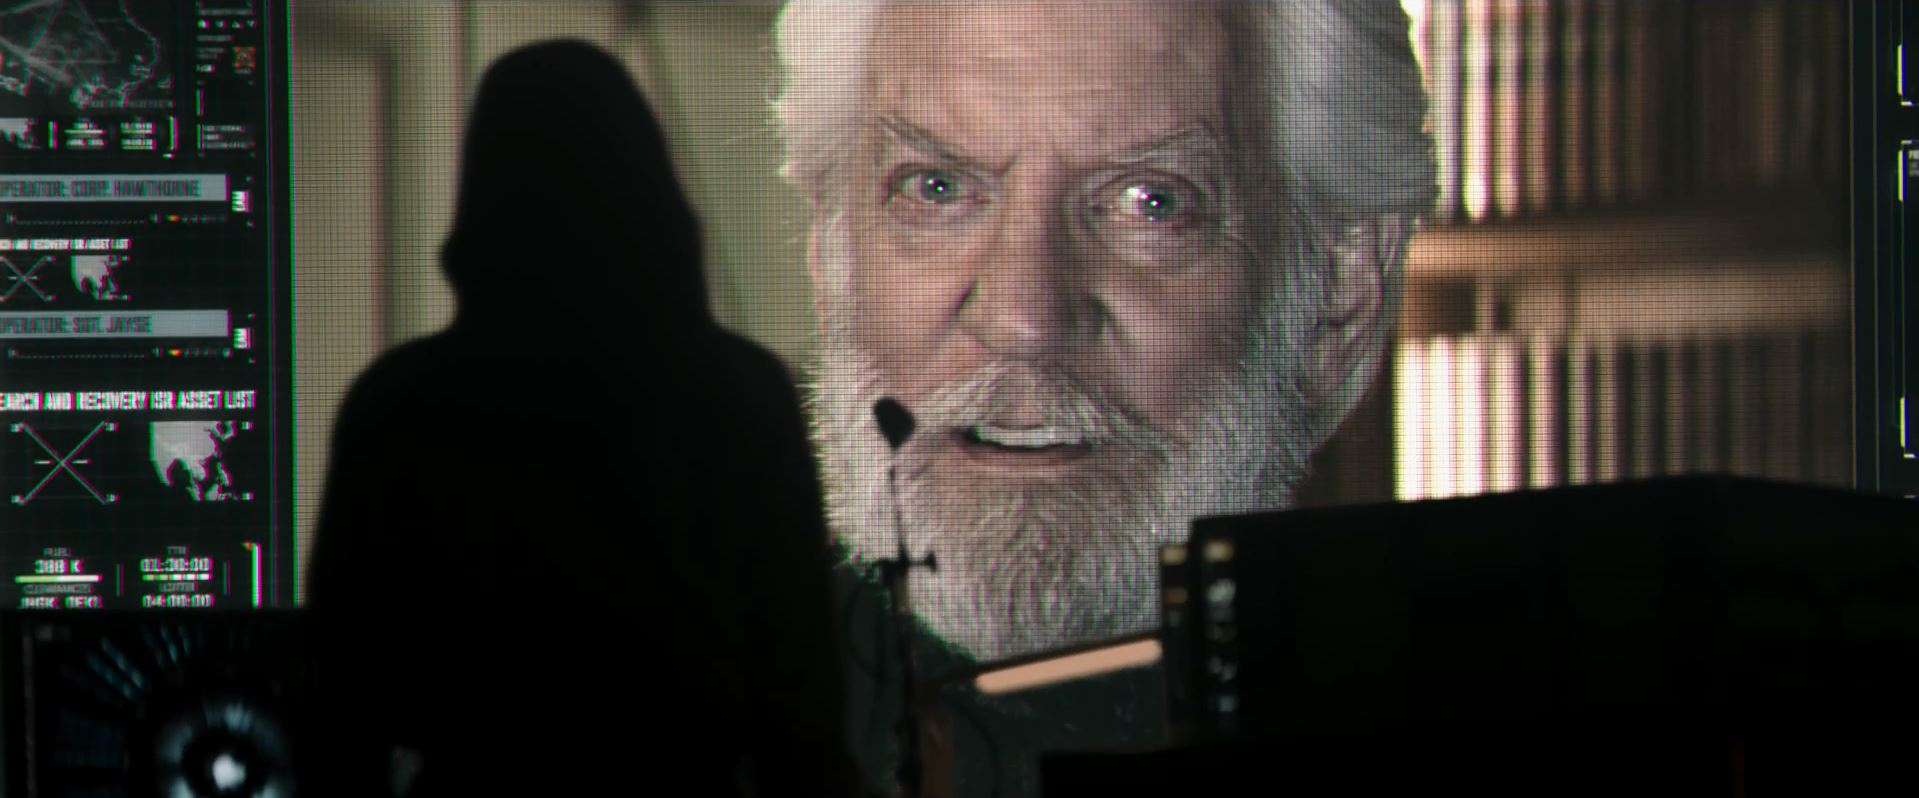 The Hunger Games Mockingjay Part 1 Trailer - Donald Sutherland as President Coriolanus Snow